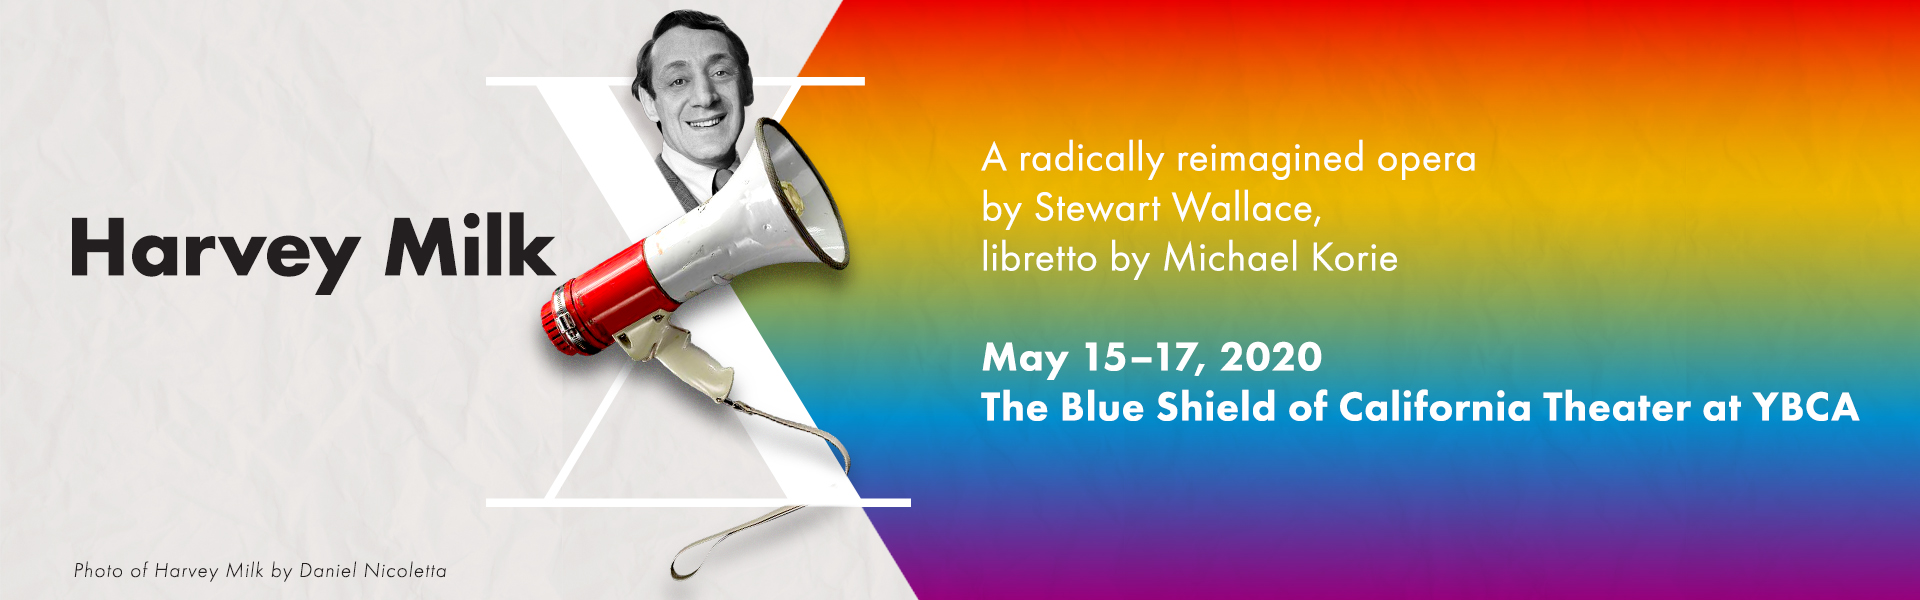 OP 2019 Productions WebBanner R3 Harvey Milk